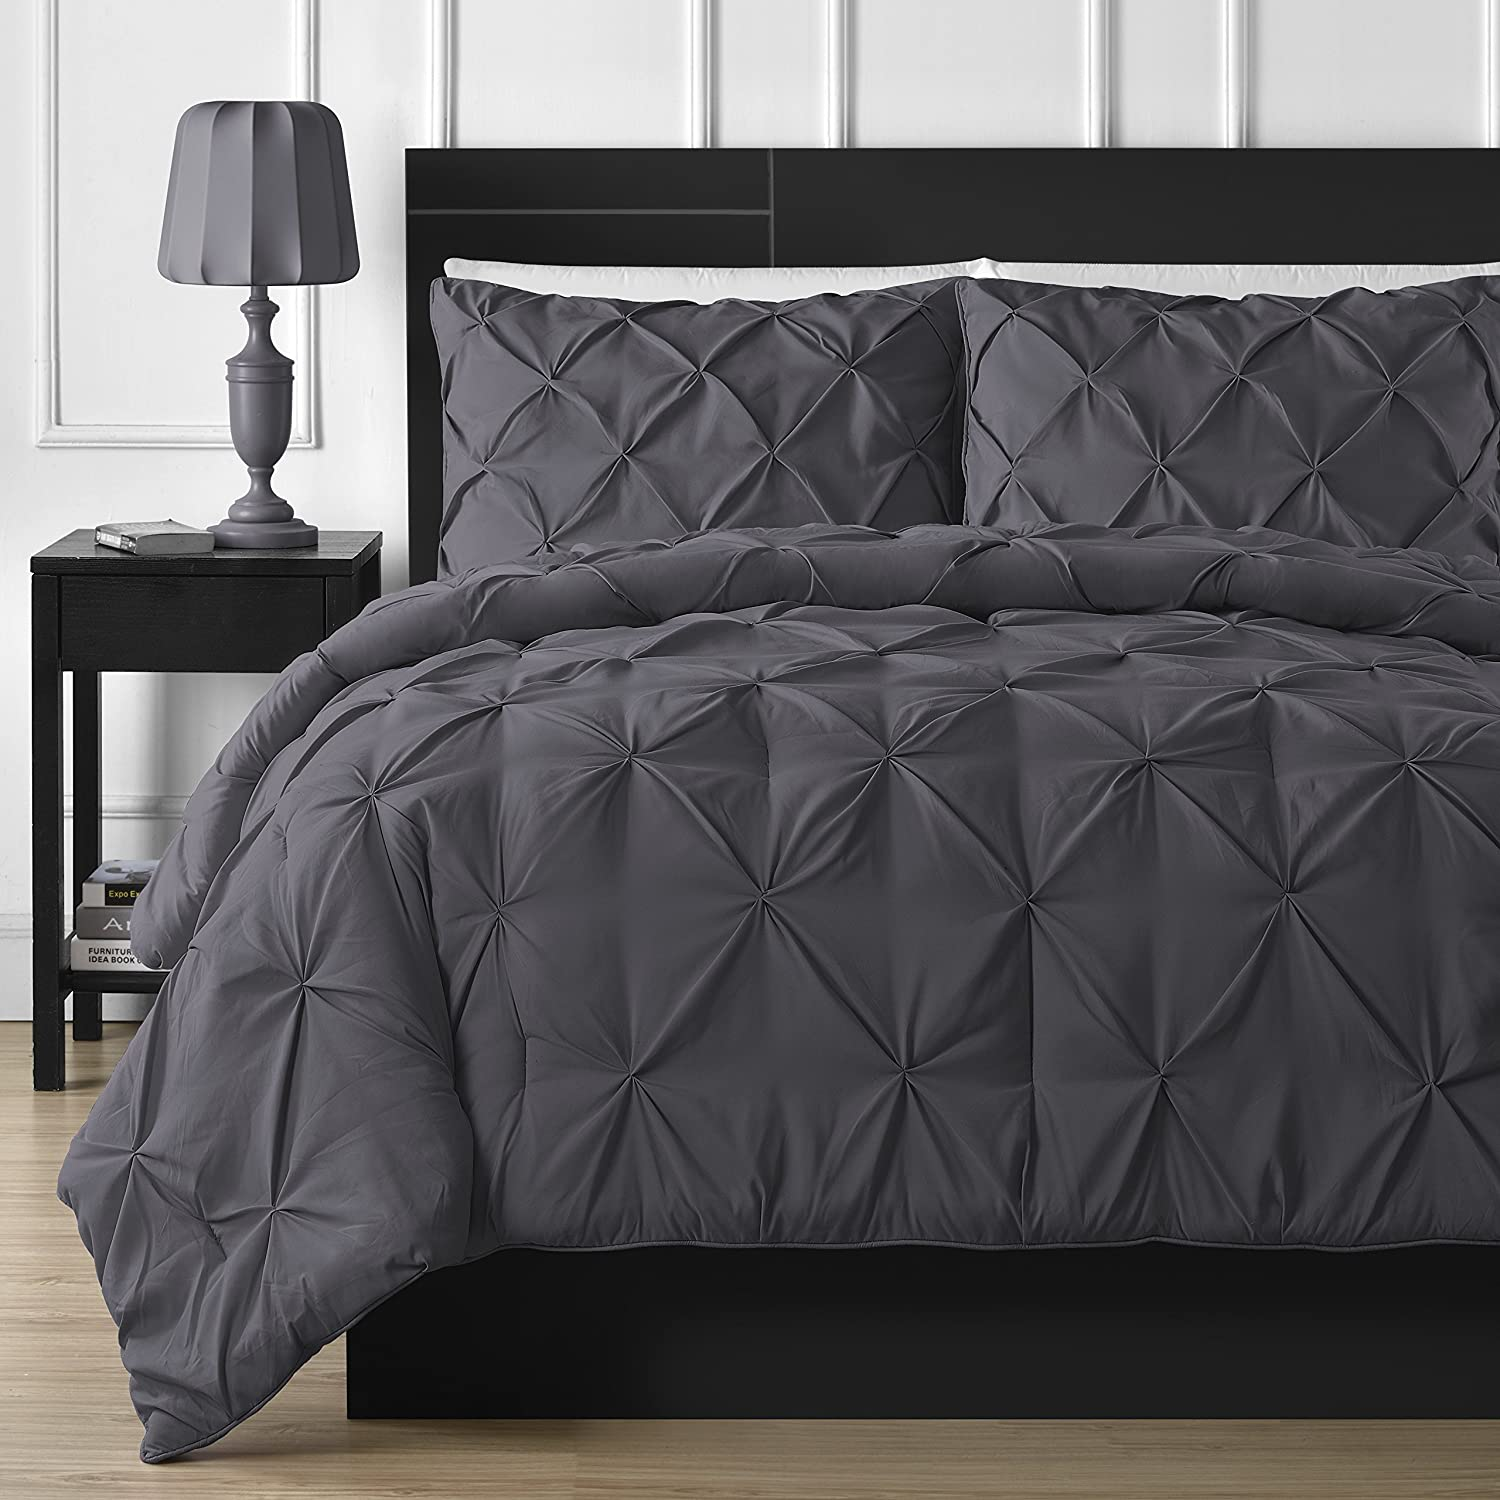 Double-needle Durable Stitching Comfy Bedding 3-piece Pinch Pleat Comforter Set (King, Gray